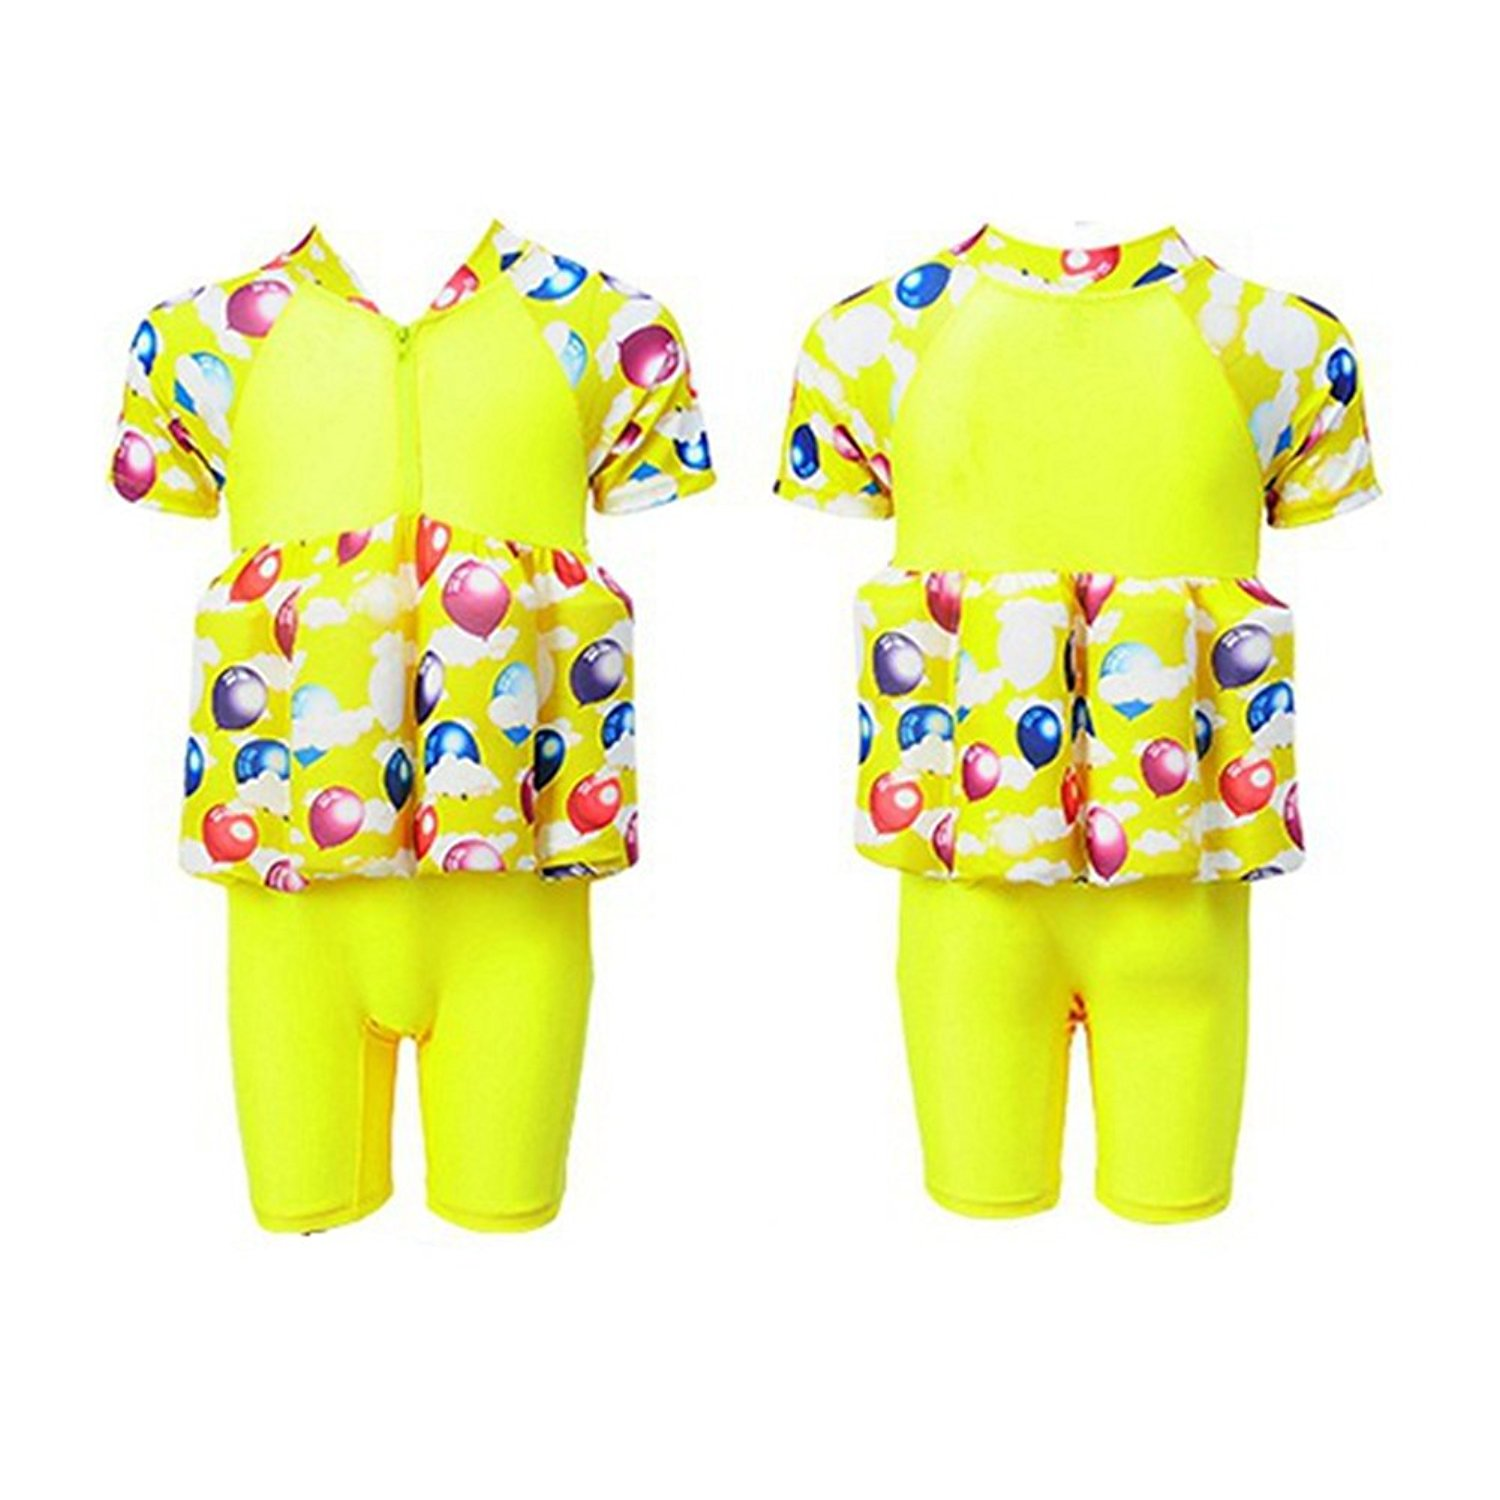 3d2181a34a Get Quotations · One-Piece Floating Buoyancy Baby Girl/Boy Swimsuits with  Cap Detachable Swimwear Kids Swimming